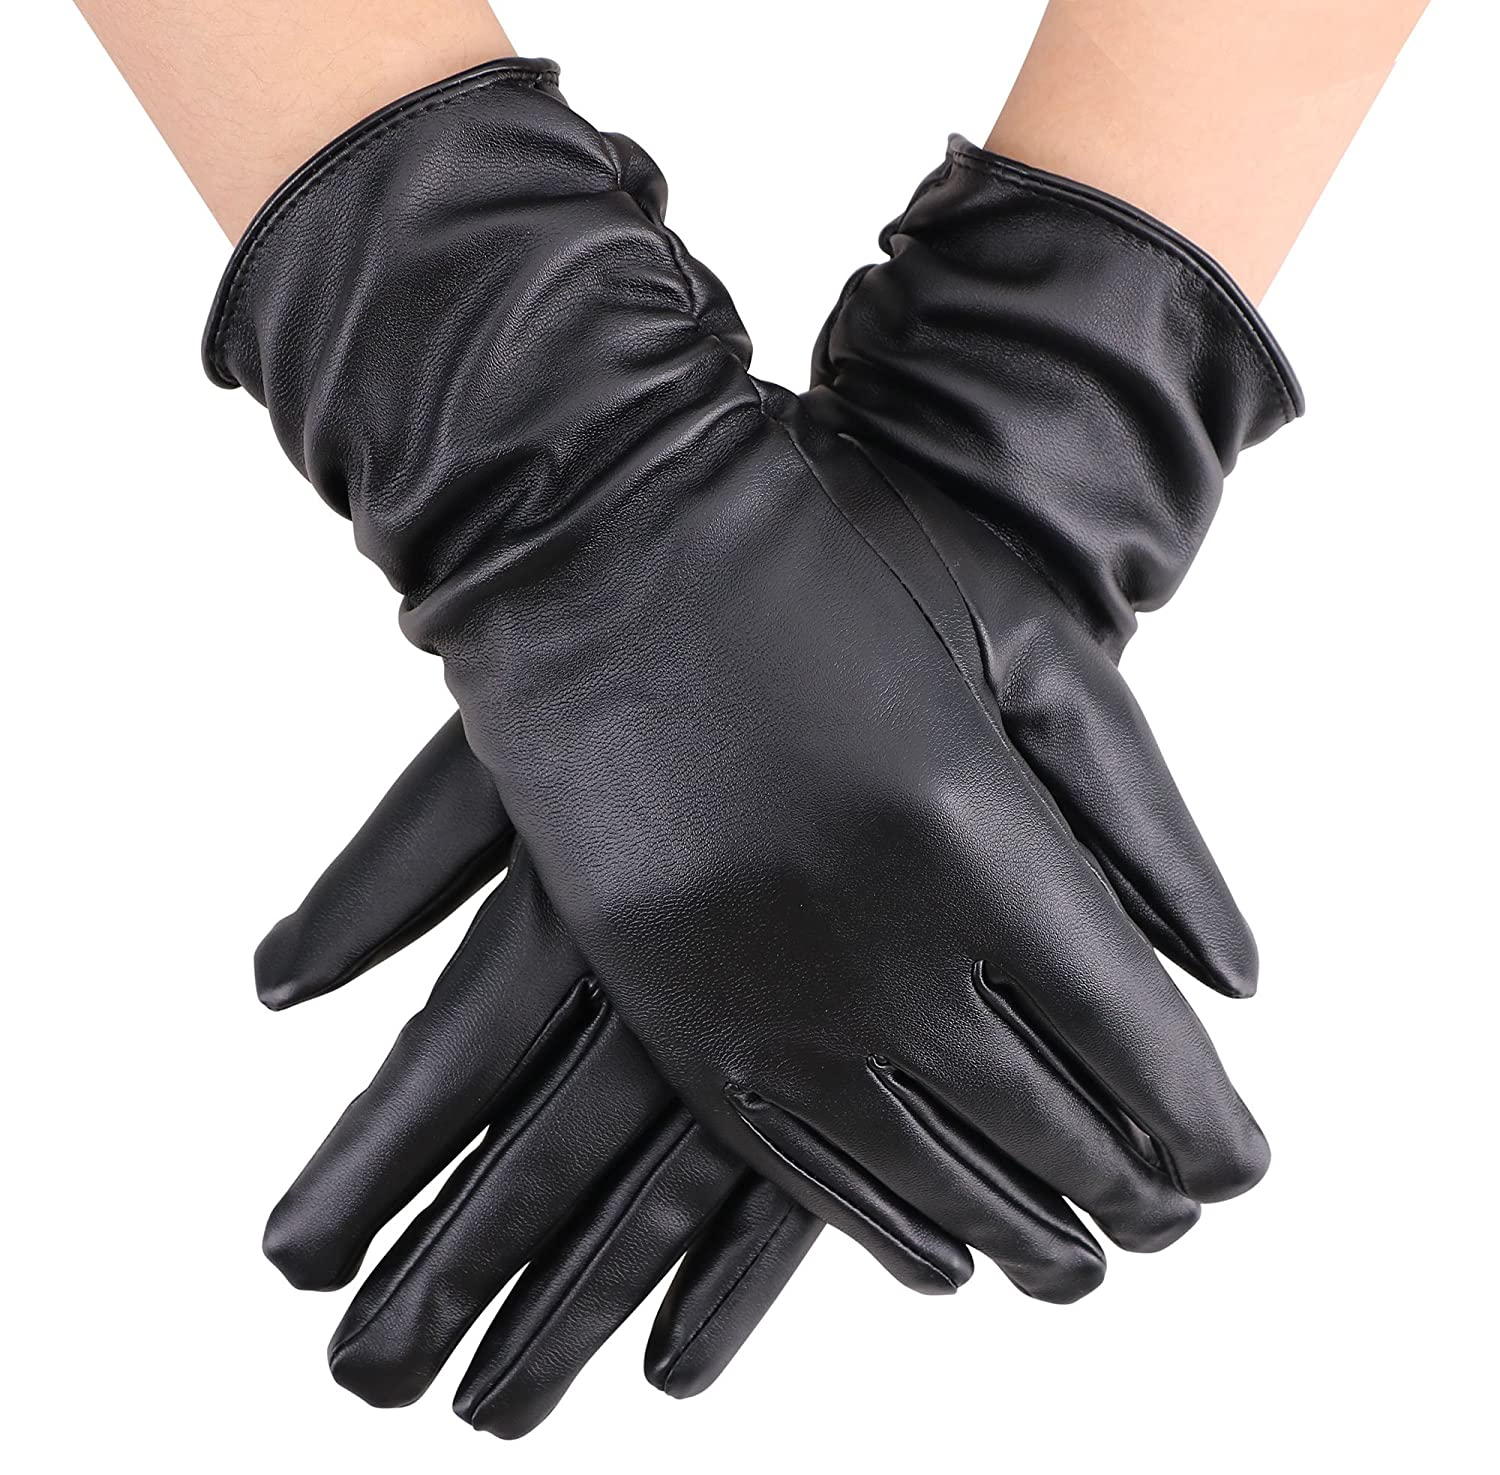 Simplicity Women's Elegant Winter Warm Long PU Leather Gloves Black